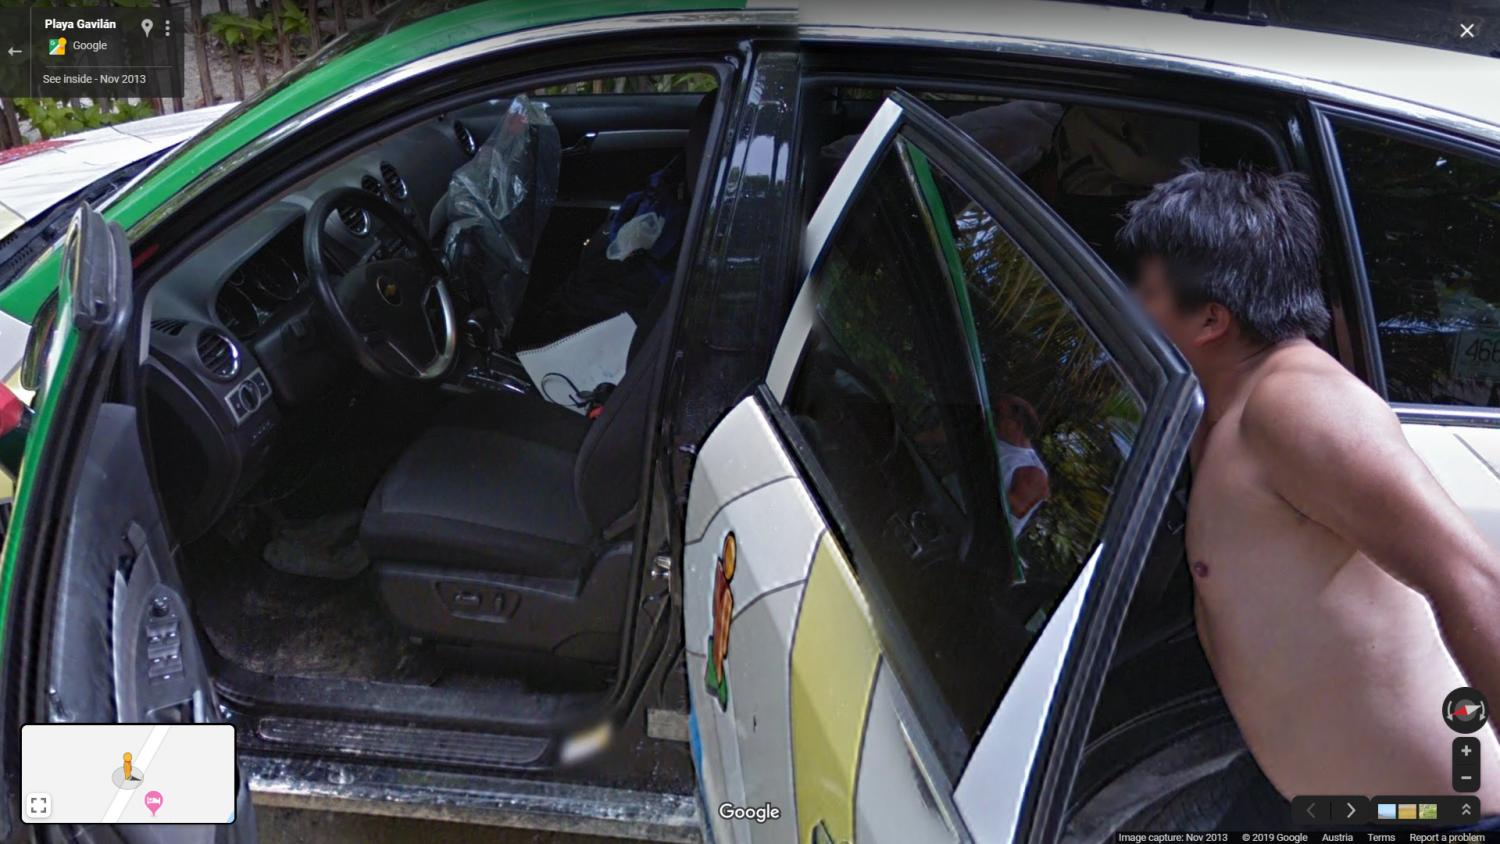 google maps streetview inside the car